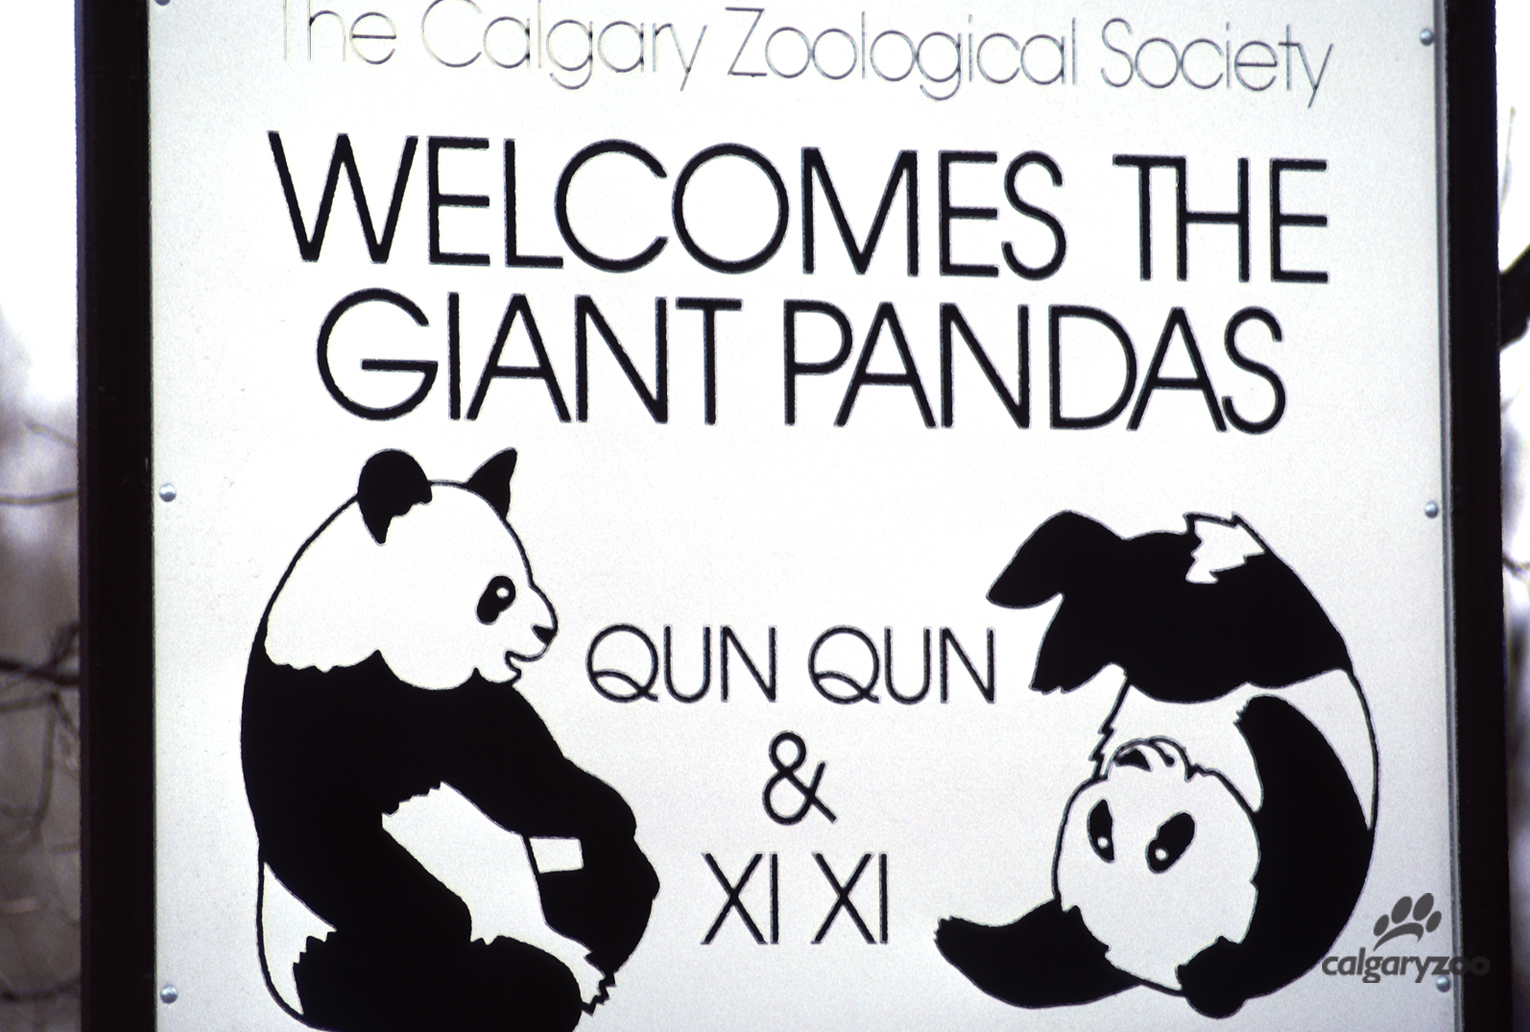 Why visit giant pandas at the calgary zoo calgary zoo for years giant pandas have captured the worlds collective imagination with their distinctive markings friendly faces and unique diet as a global symbol buycottarizona Gallery